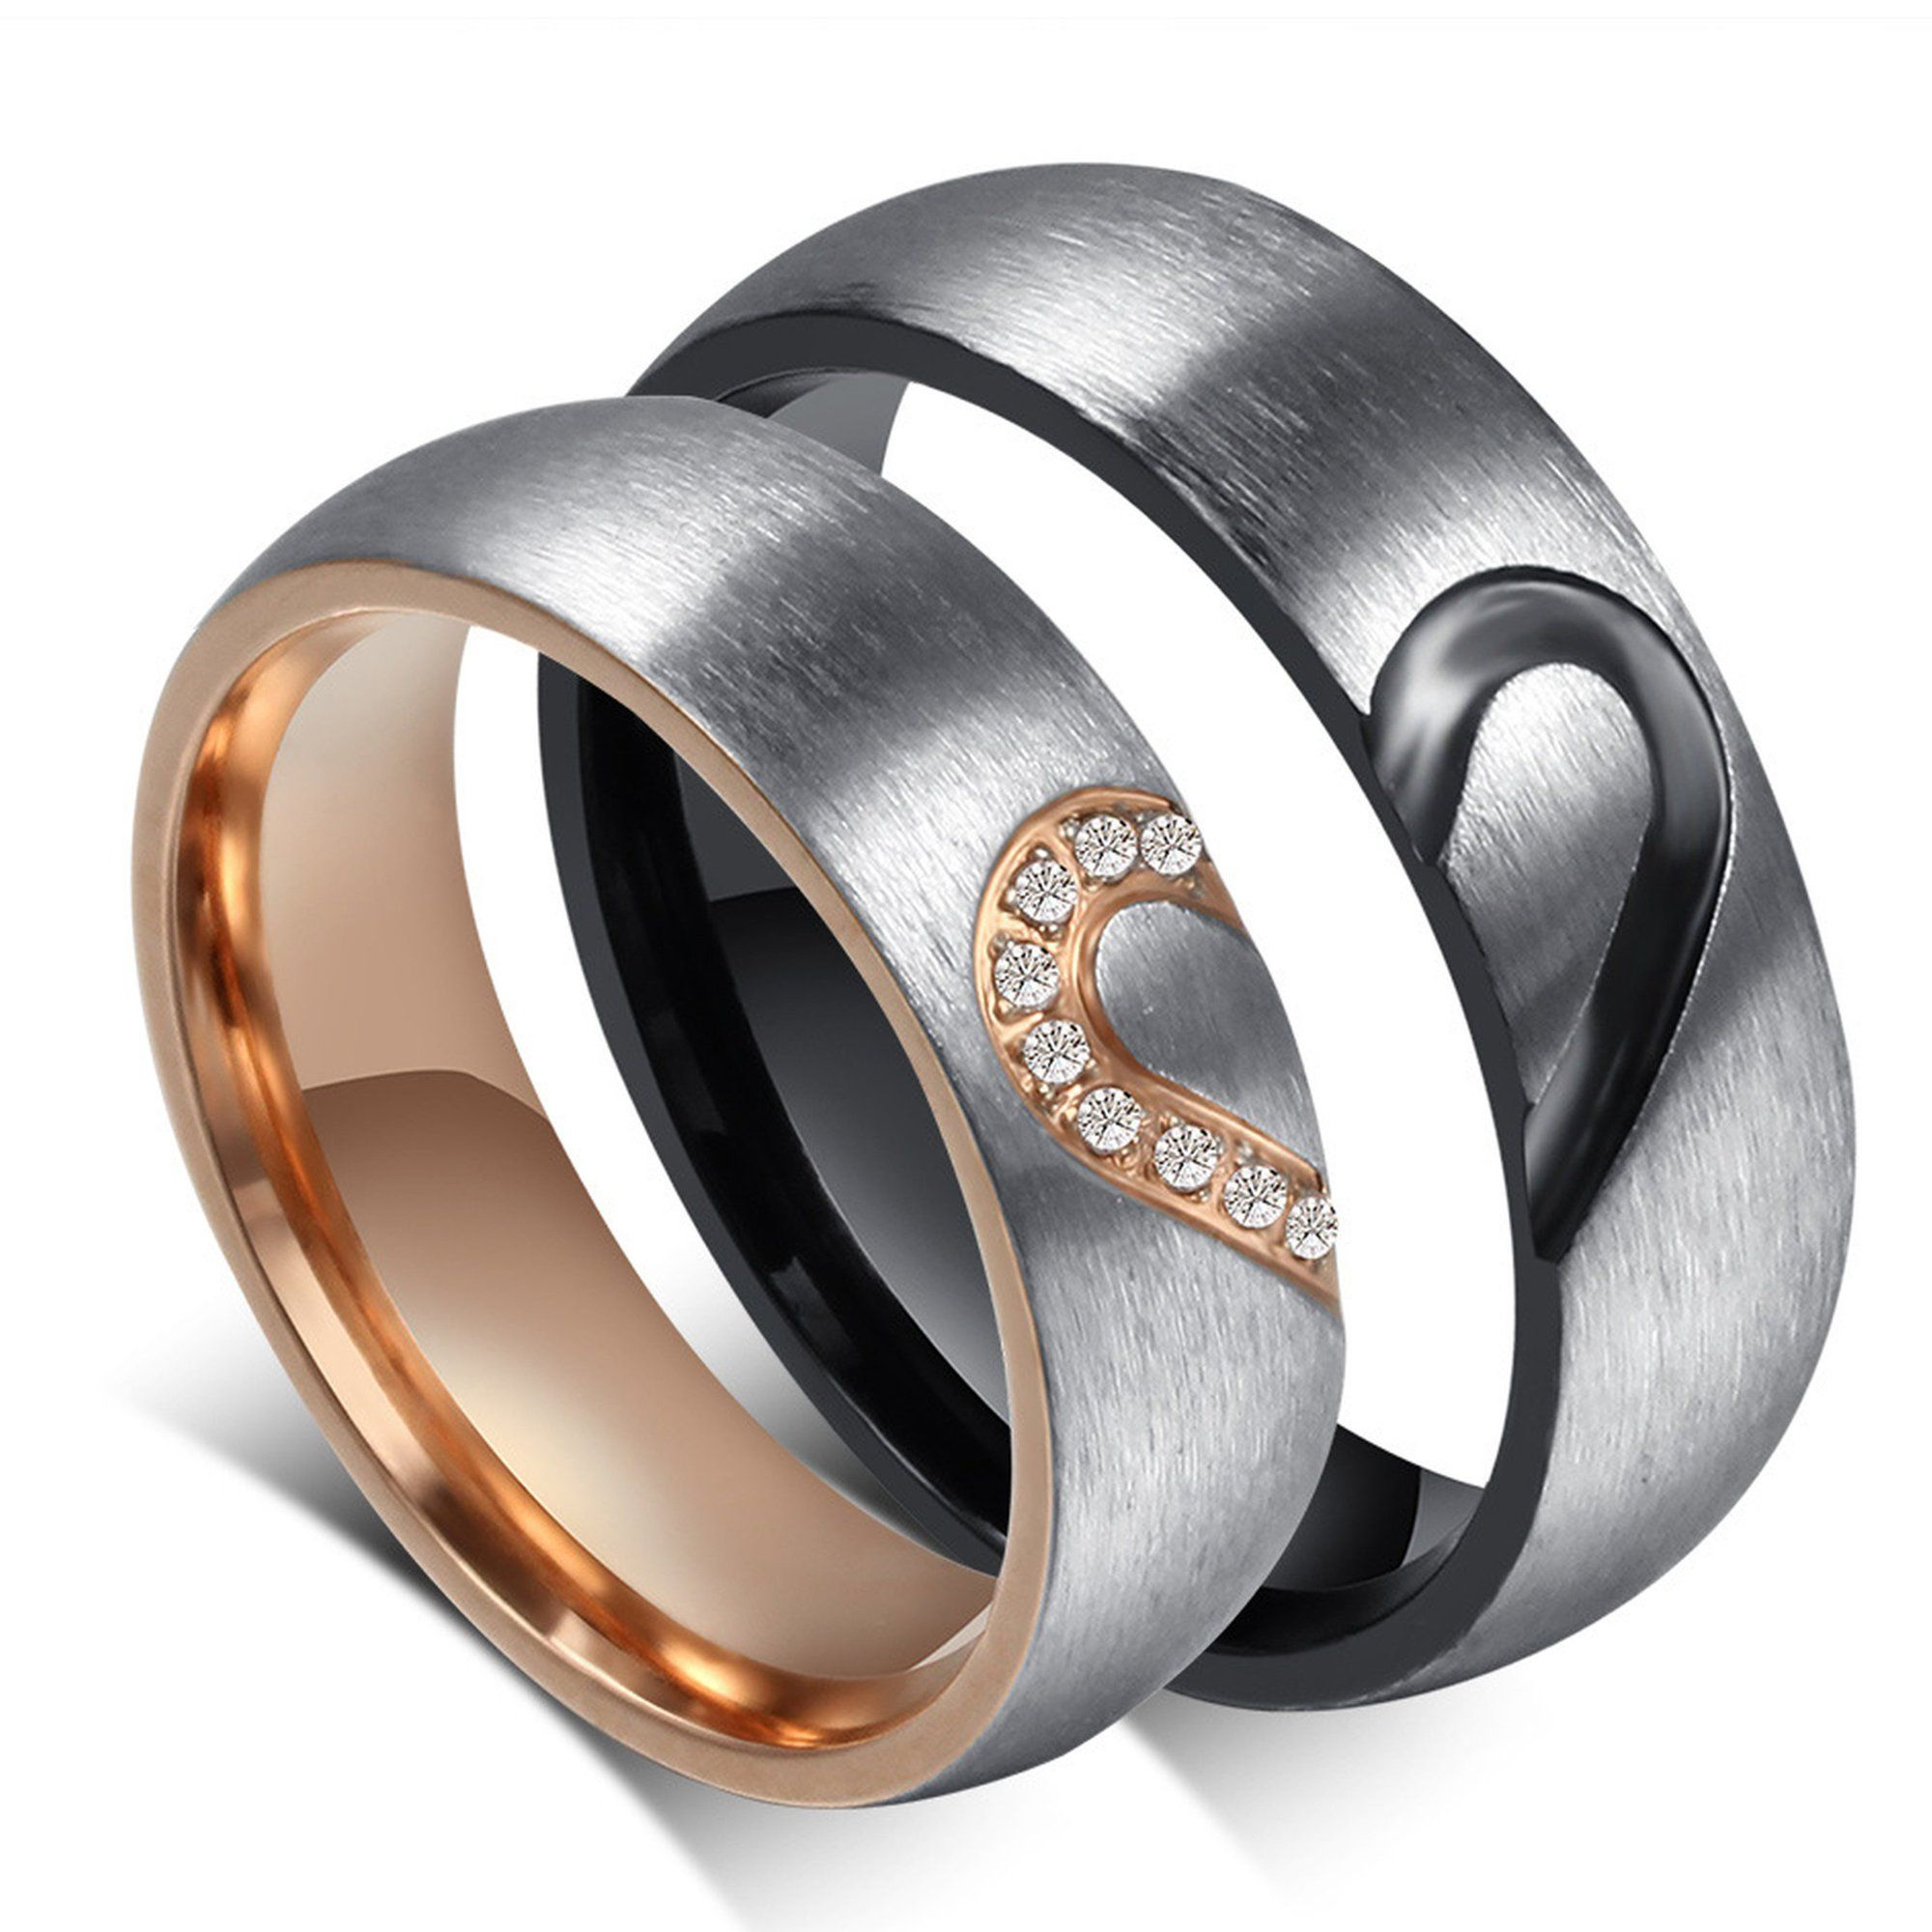 Aij Arcoirisjewelry Couple S Matching Heart Ring His Or Her Matching Wedding Band In Stainless Steel For Men Or Women Comfort Fit Walmart Com Matching Promise Rings Matching Couple Rings Couple Wedding Rings